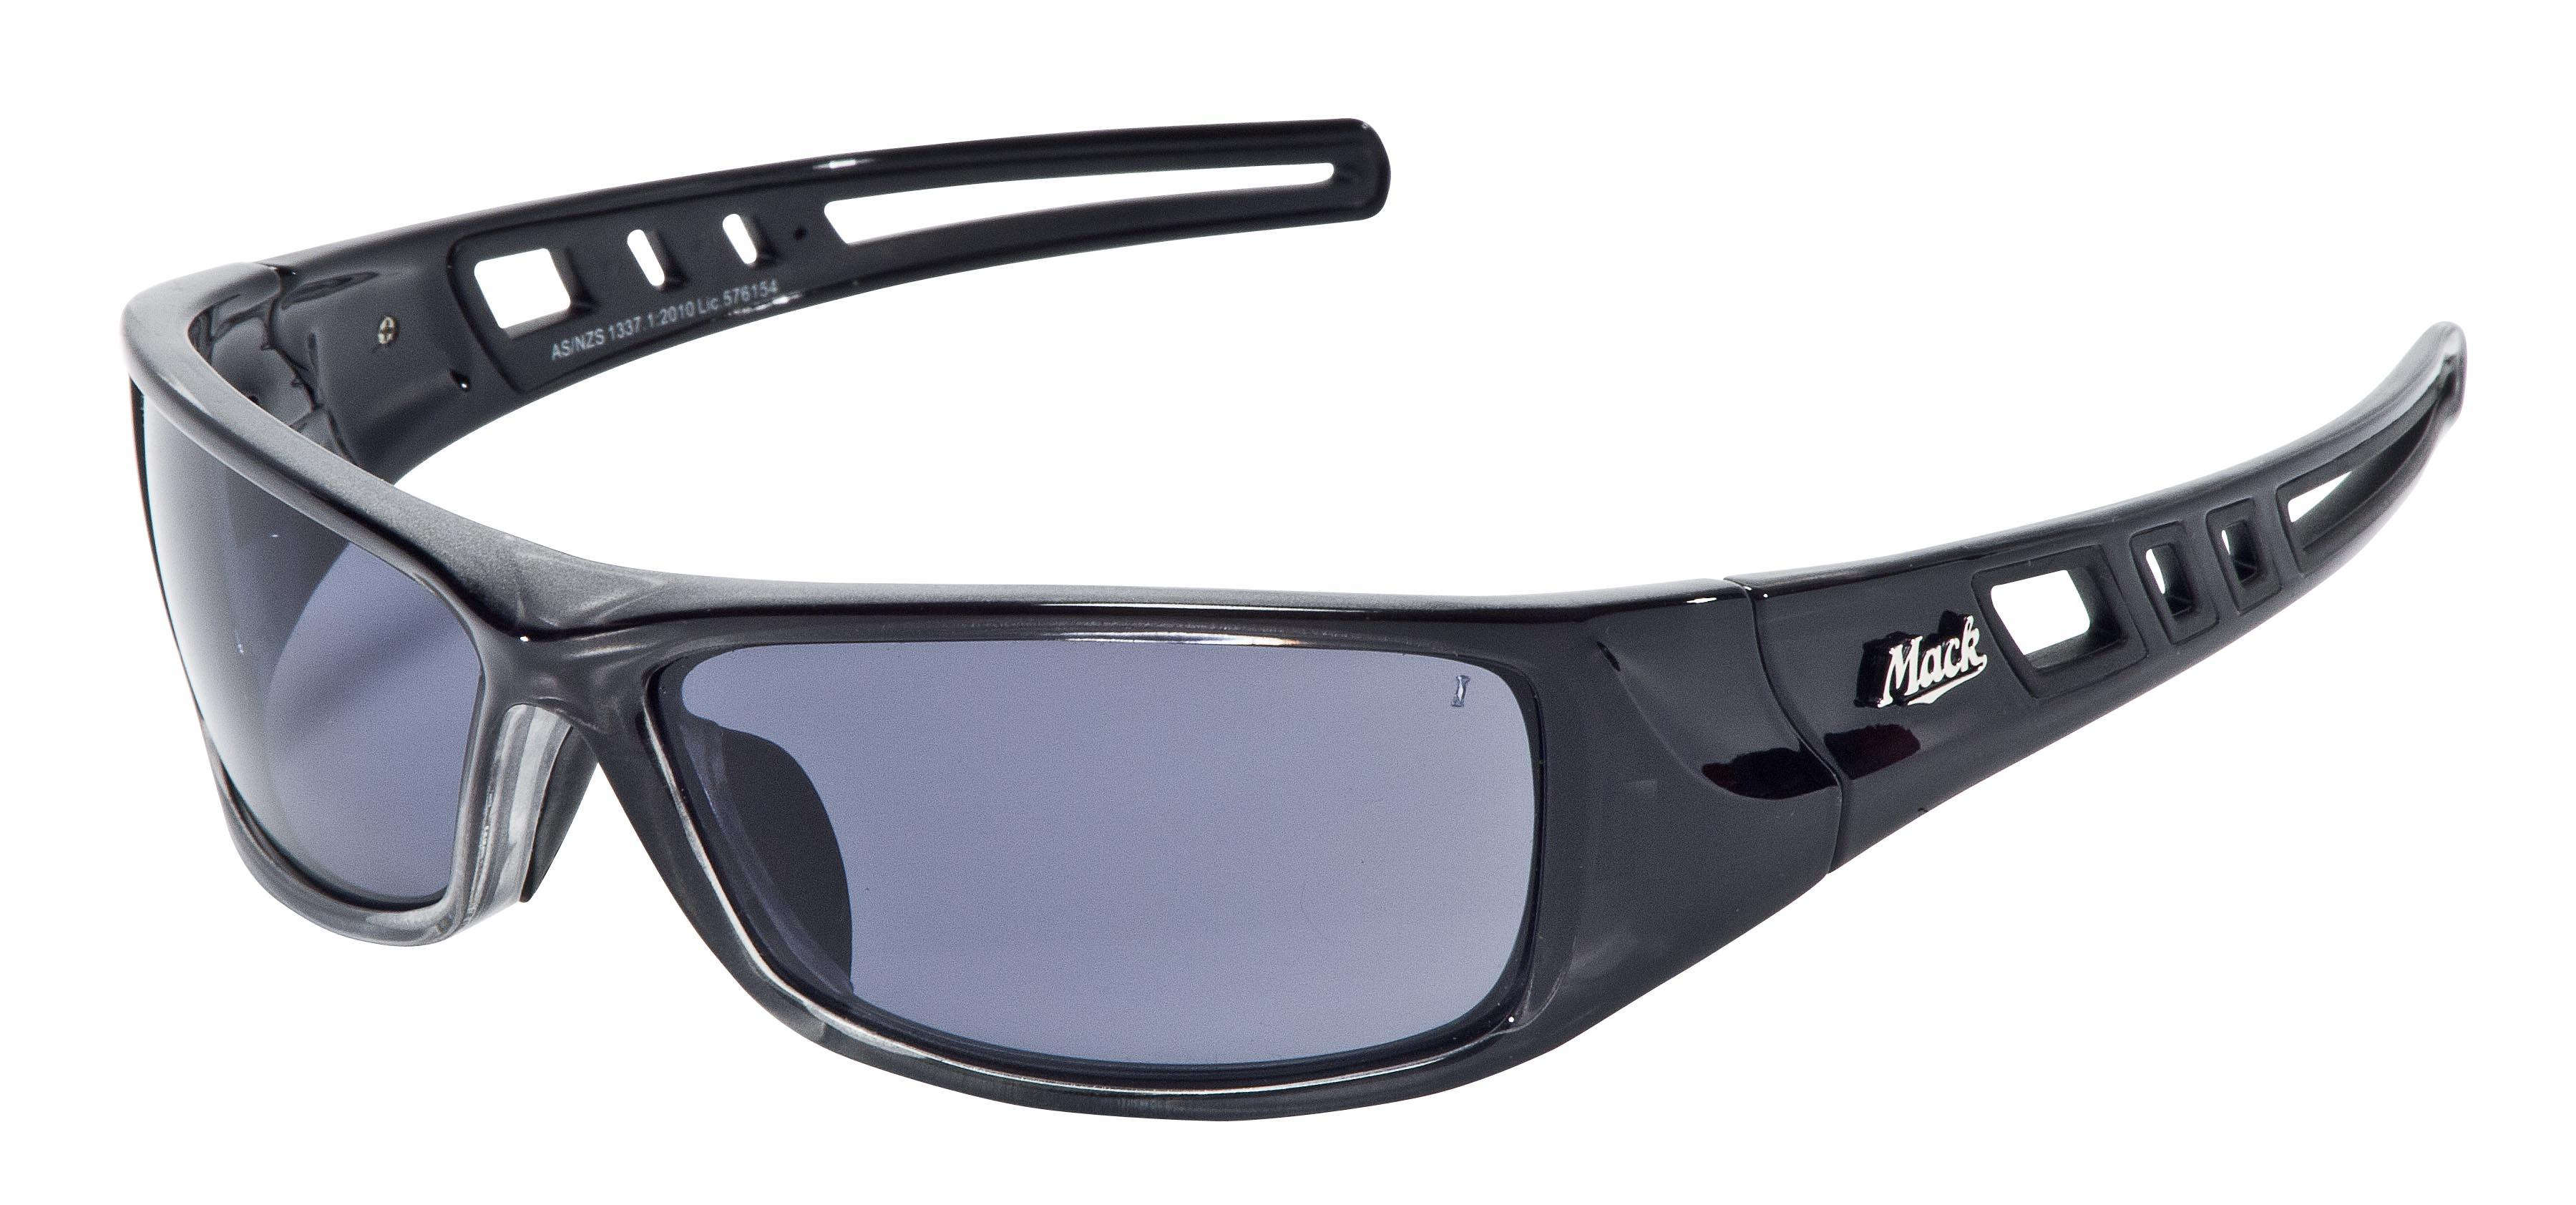 a7386dd036b0 Bolle Safety Glasses Polarized « One More Soul